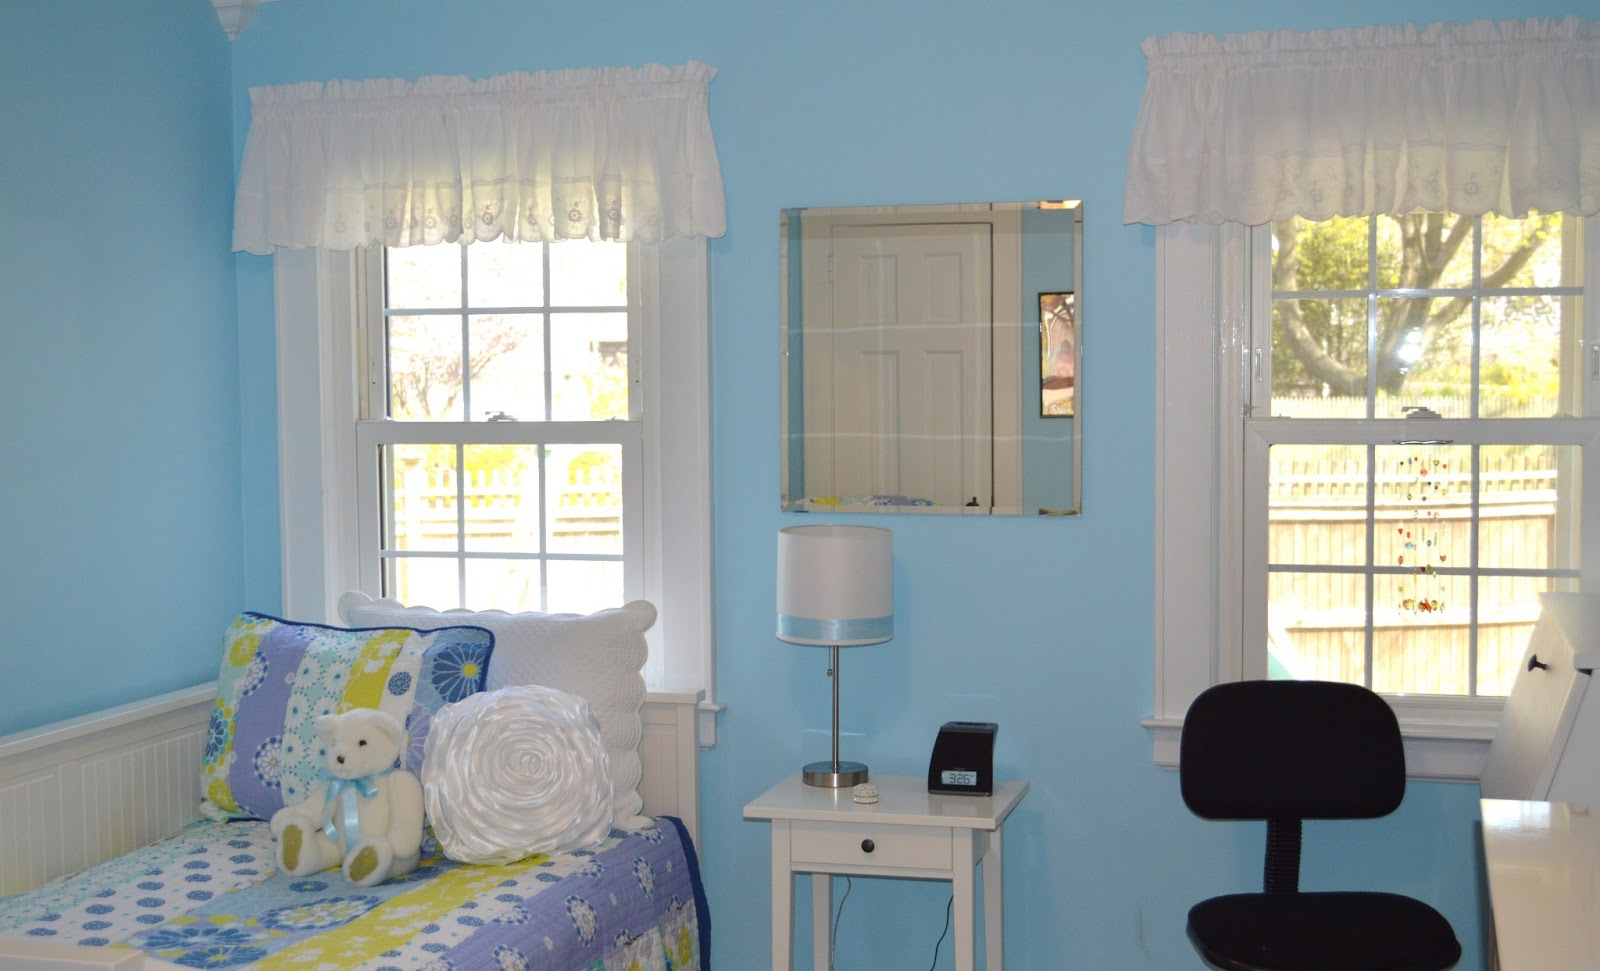 Blue and White Girls's Bedroom with teddy bear on bed